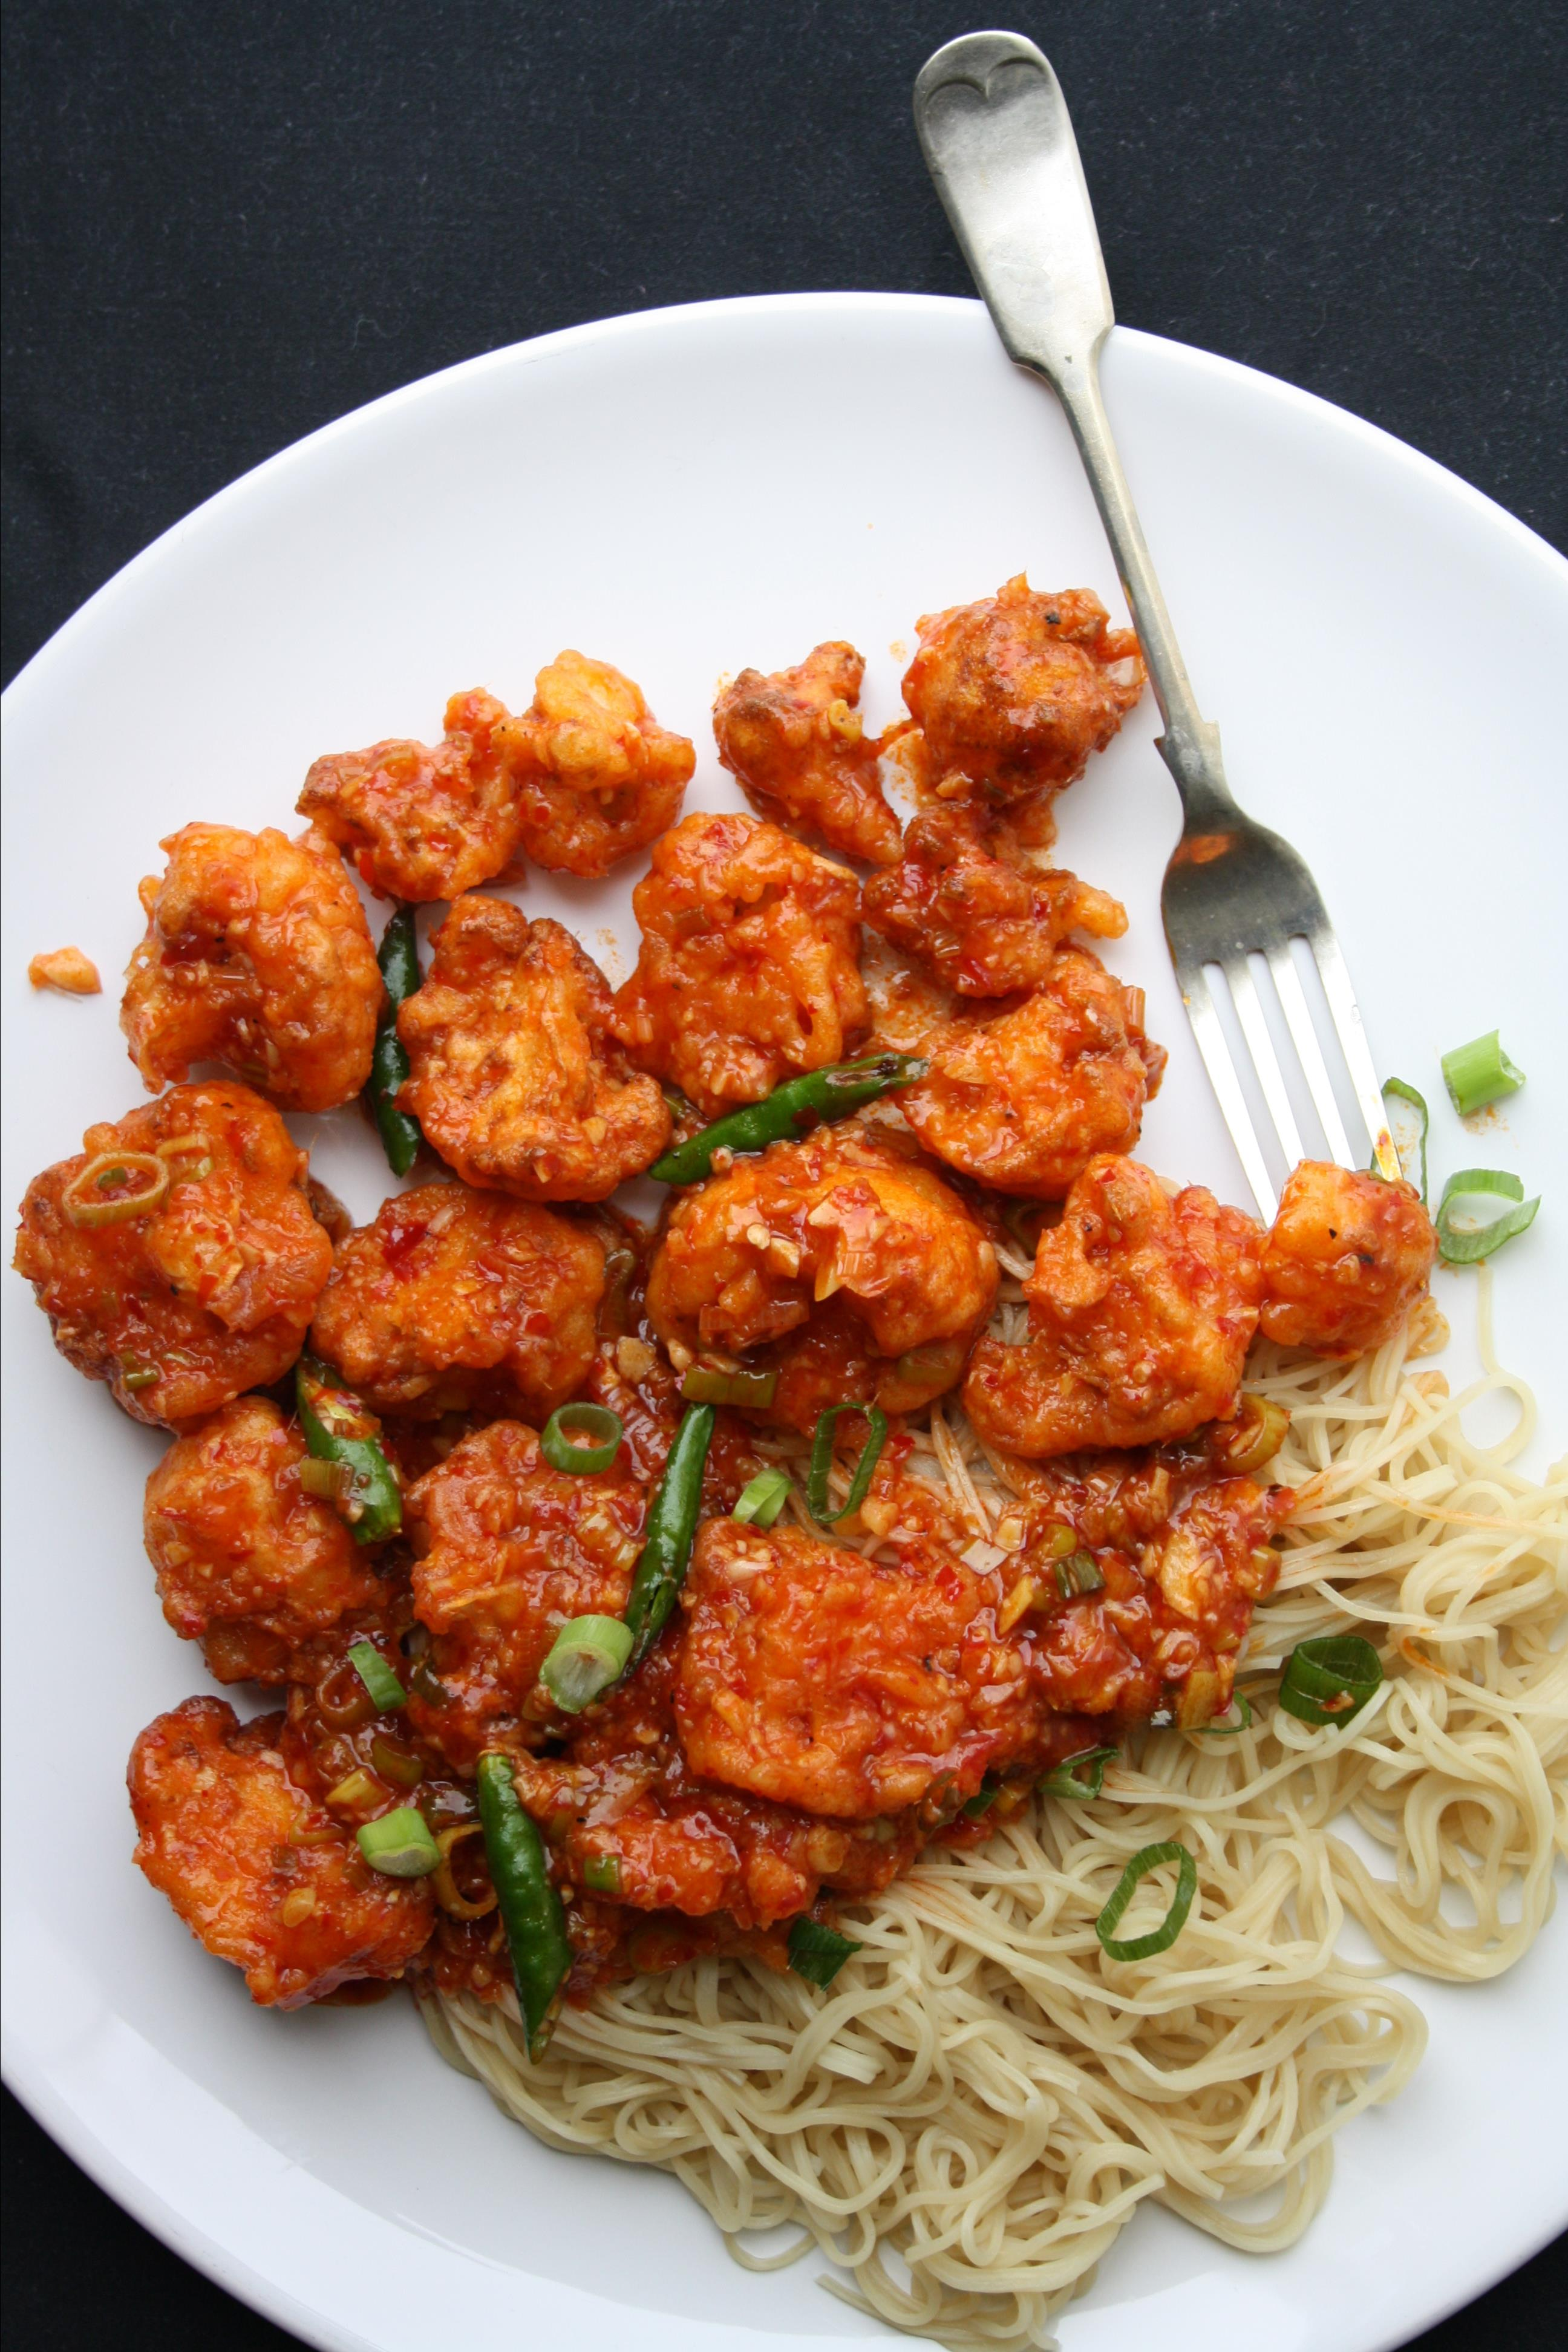 """""""This spicy Asian dish is one of my favorite gobi (cauliflower) recipes, available at many Indian restaurants,"""" says sunwind. """"Occasionally, I even love to bake the cauliflower to lower the calories. Keep in mind, baking will take away from the crispiness of fried cauliflower."""""""